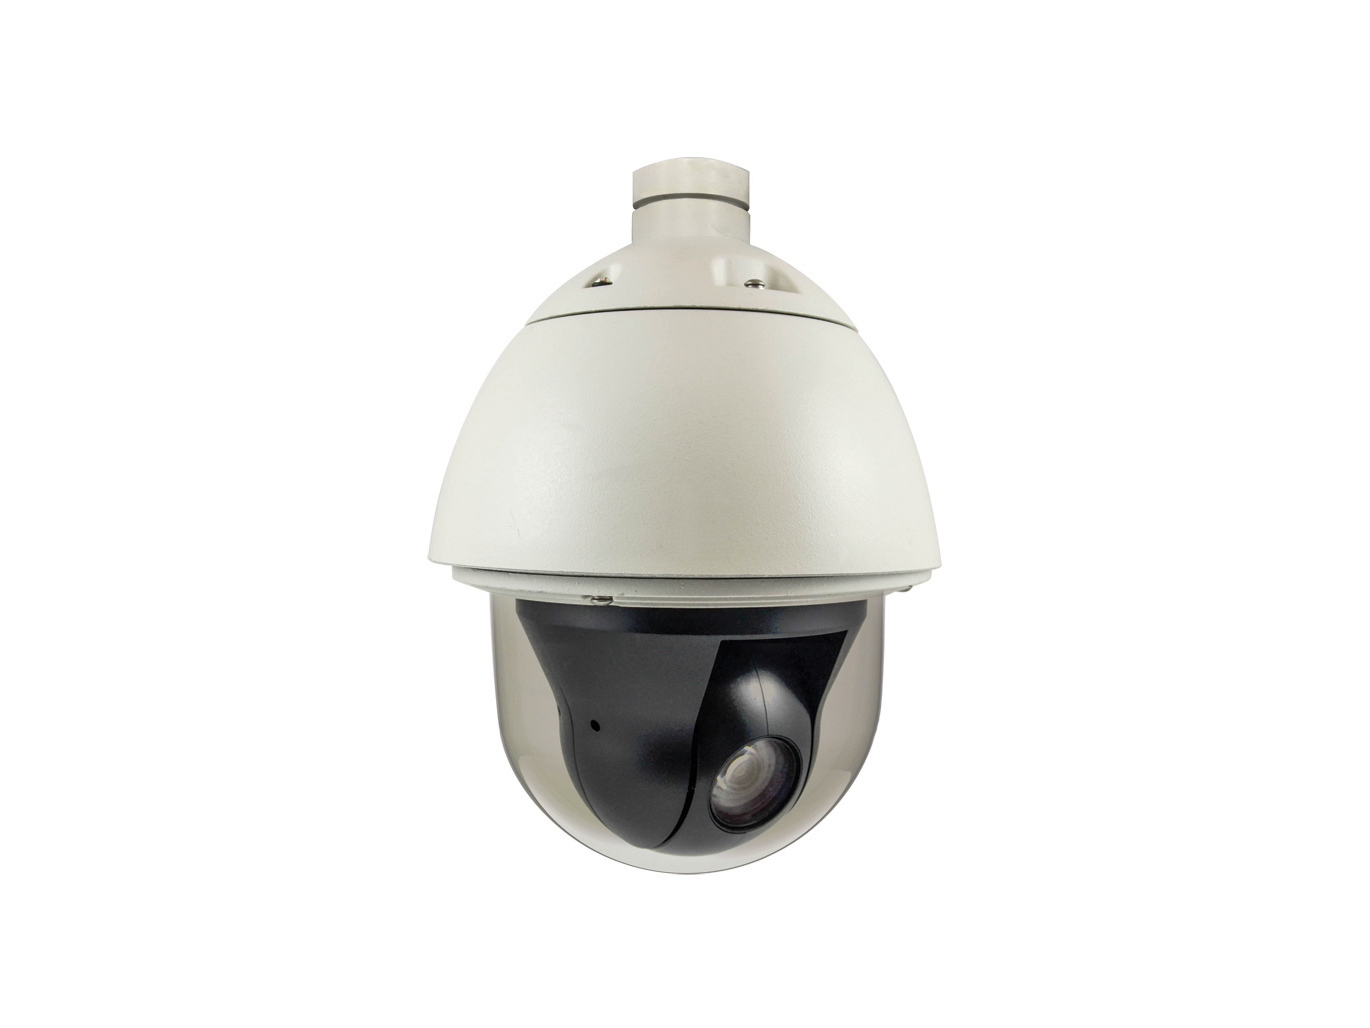 LEVEL ONE FCS-4042 PTZ Network Camera 2 Megapixel PoE-Plus 802.3af/at Outdoor Day and Night 30x WDR